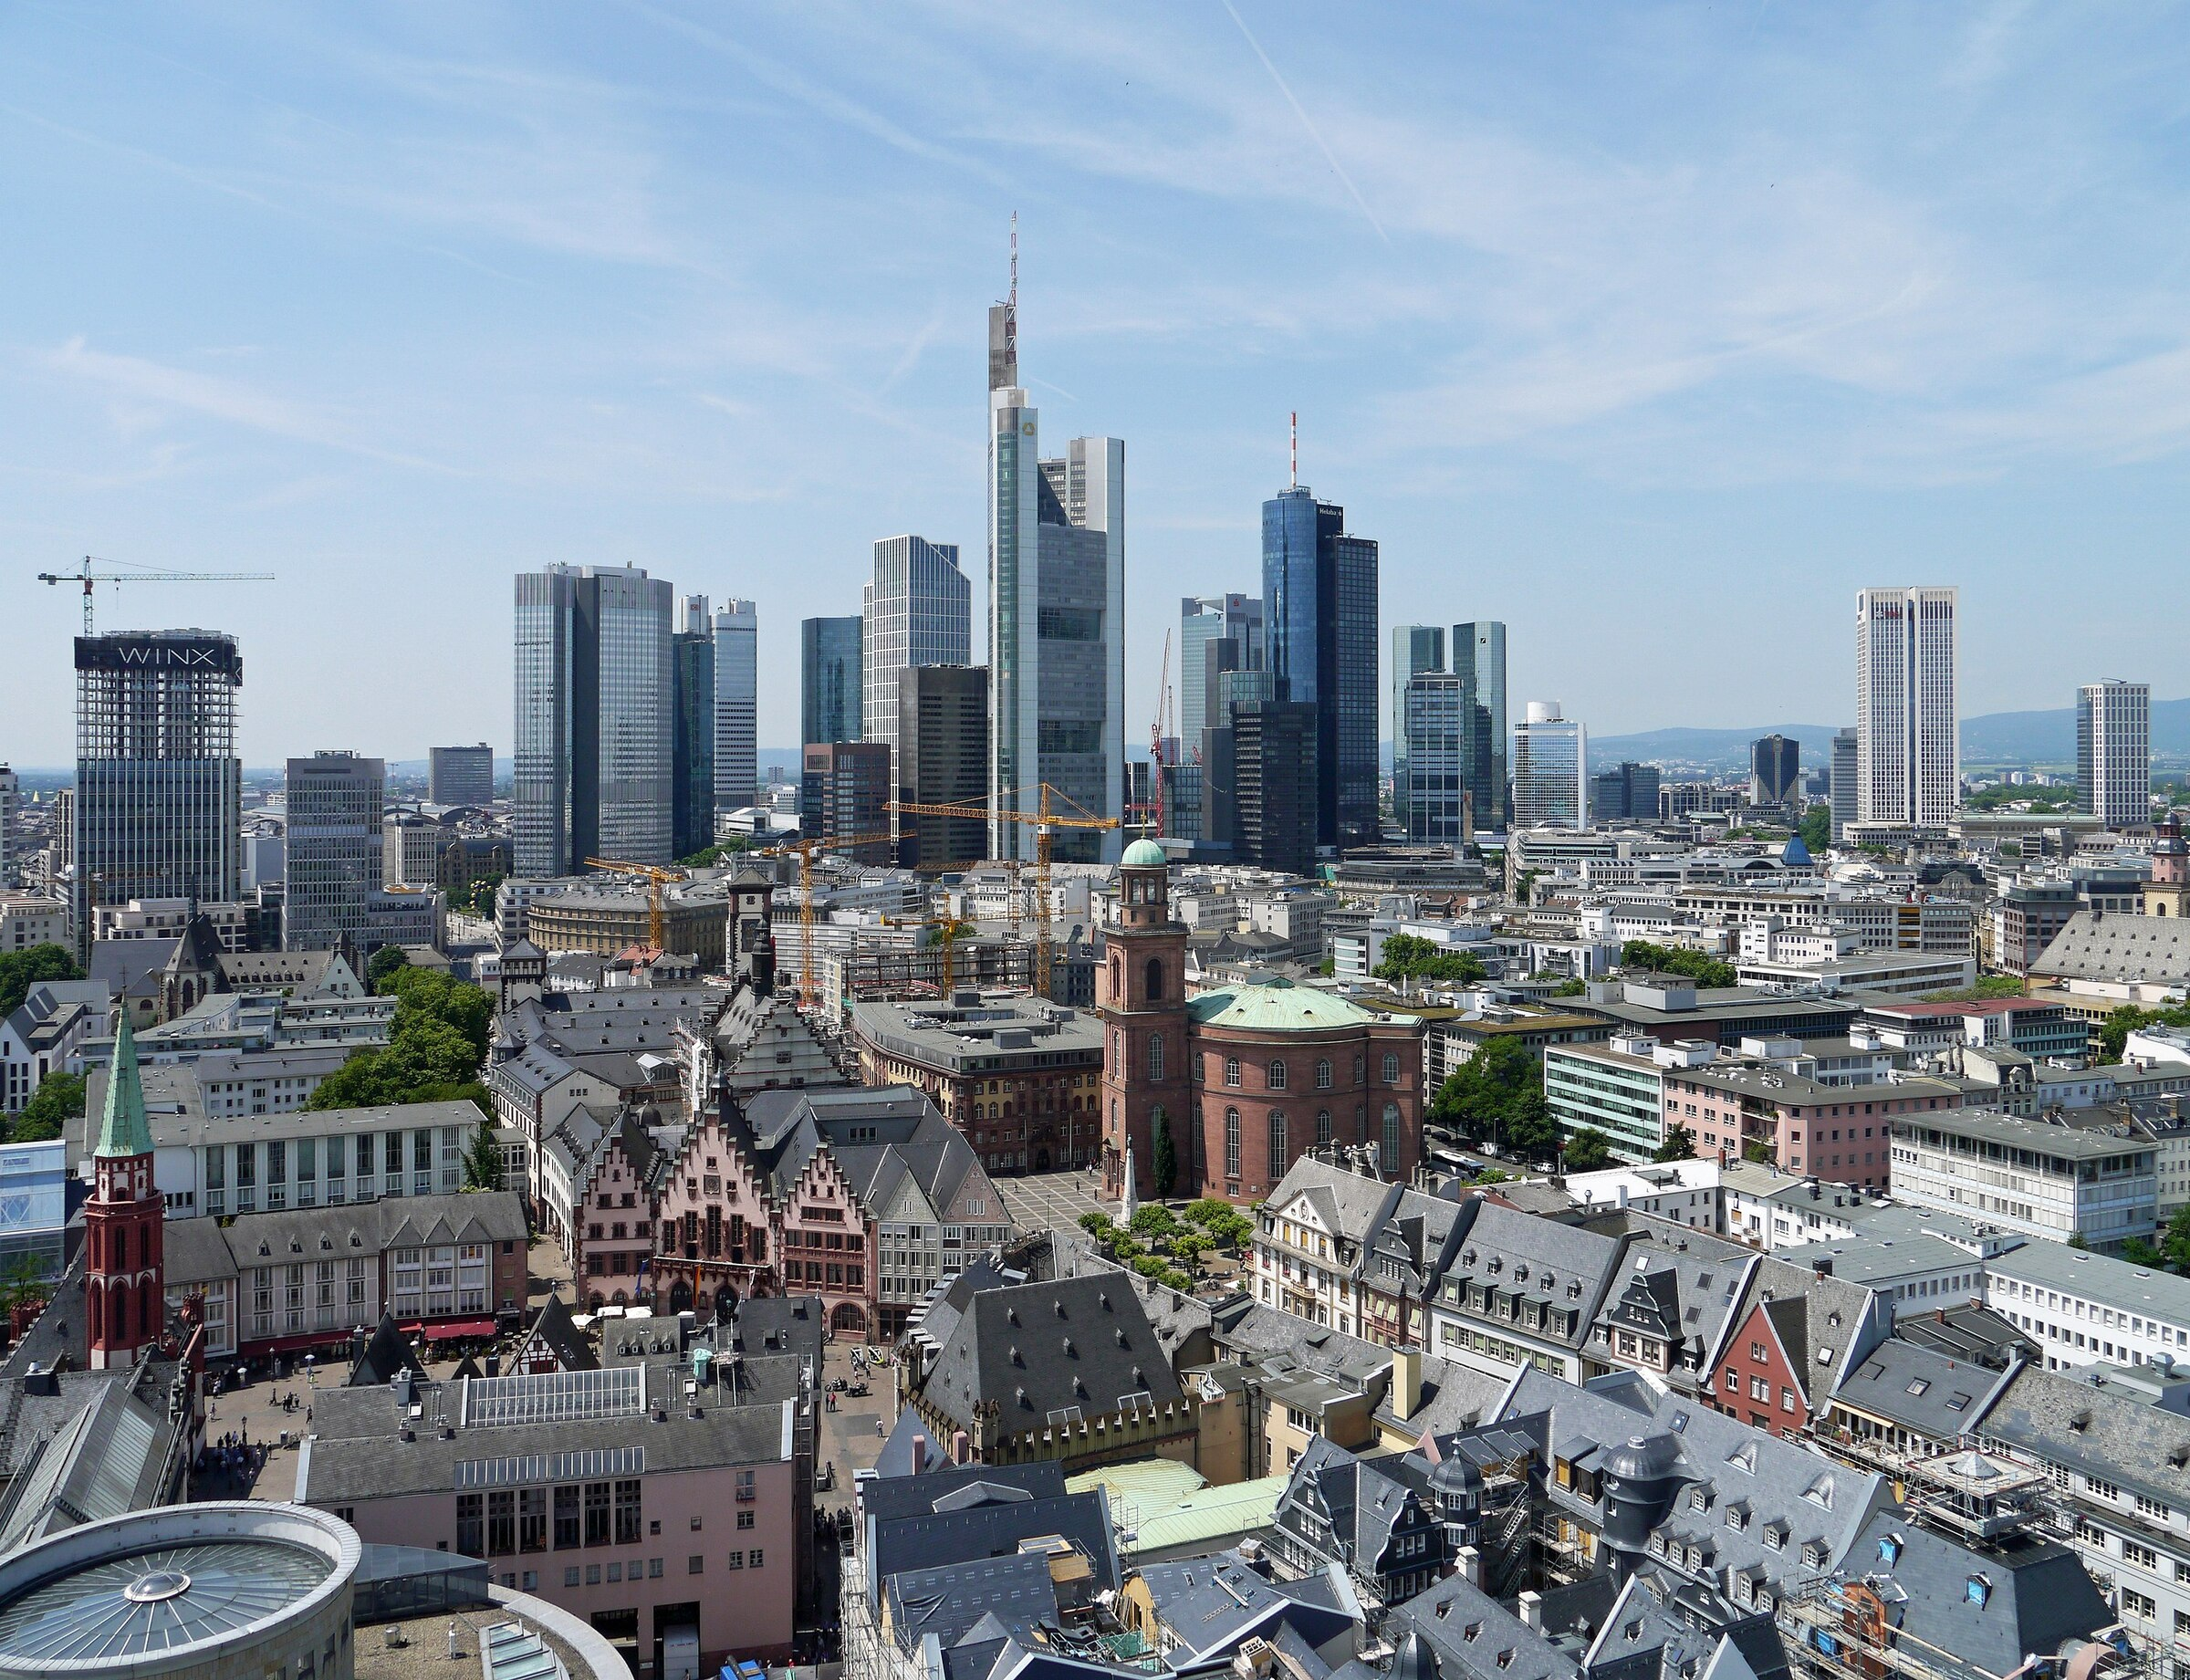 res/article/frankfurt/skyline.jpg